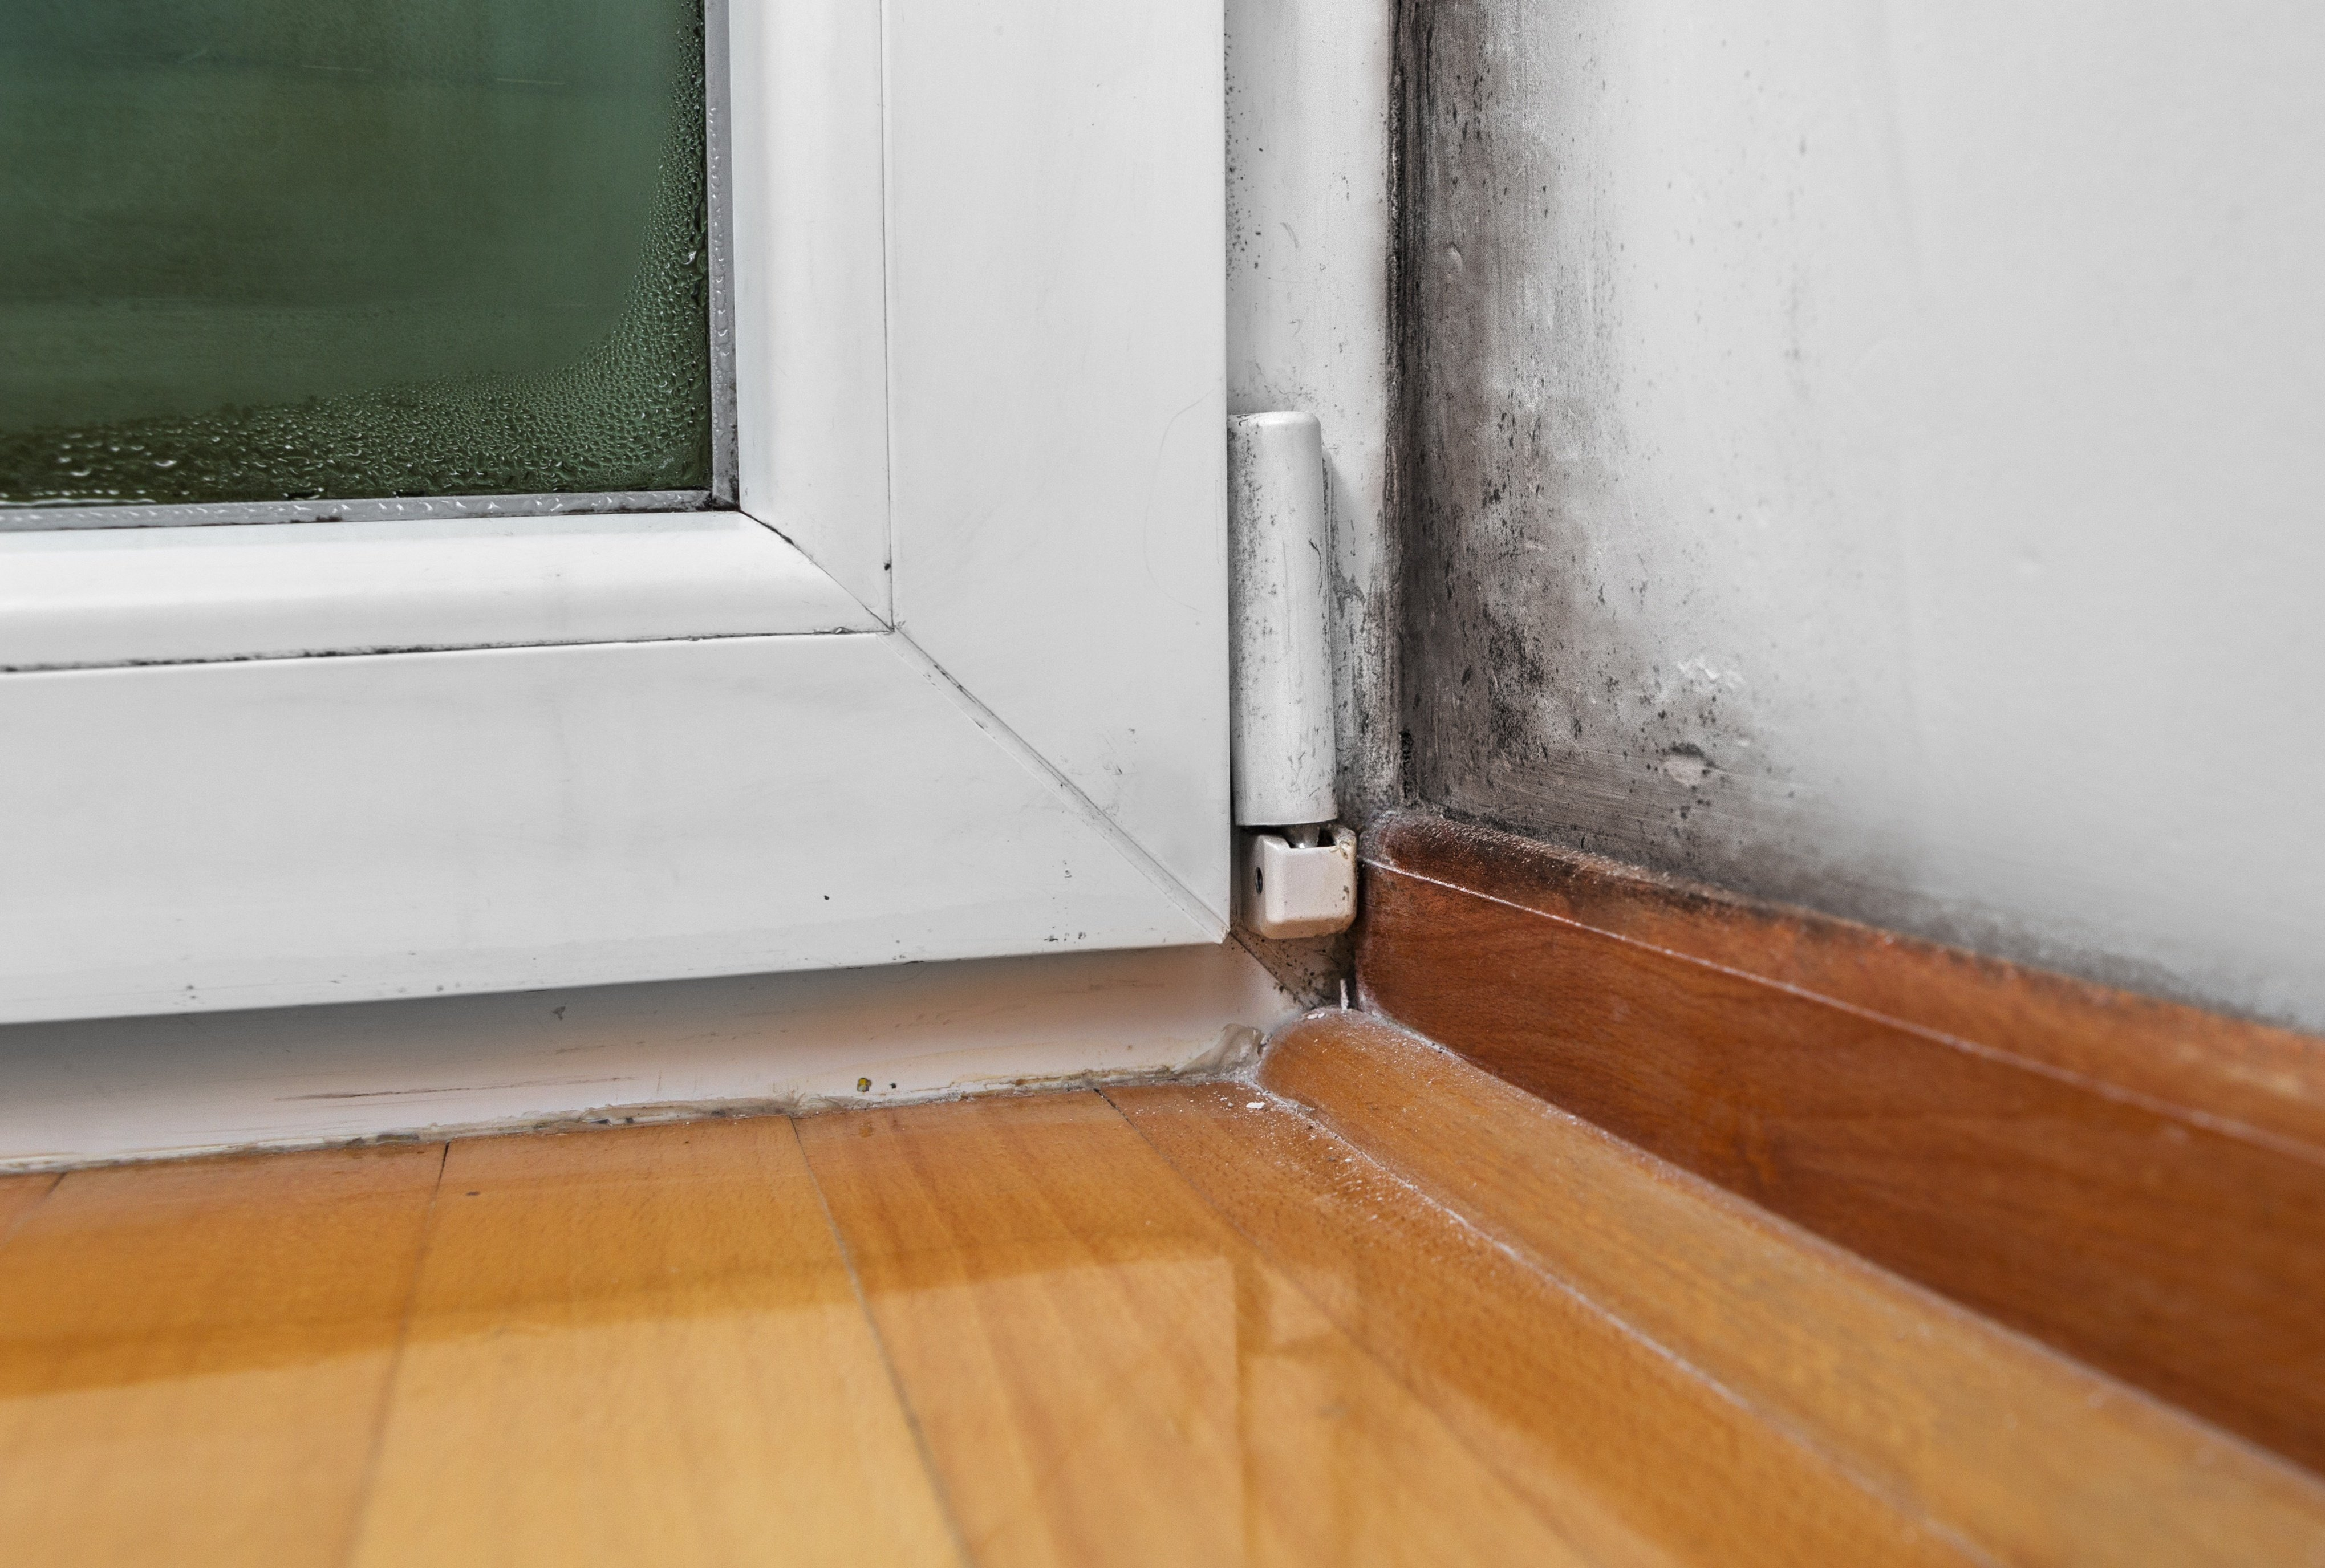 How to Repair a Rotted Door Frame